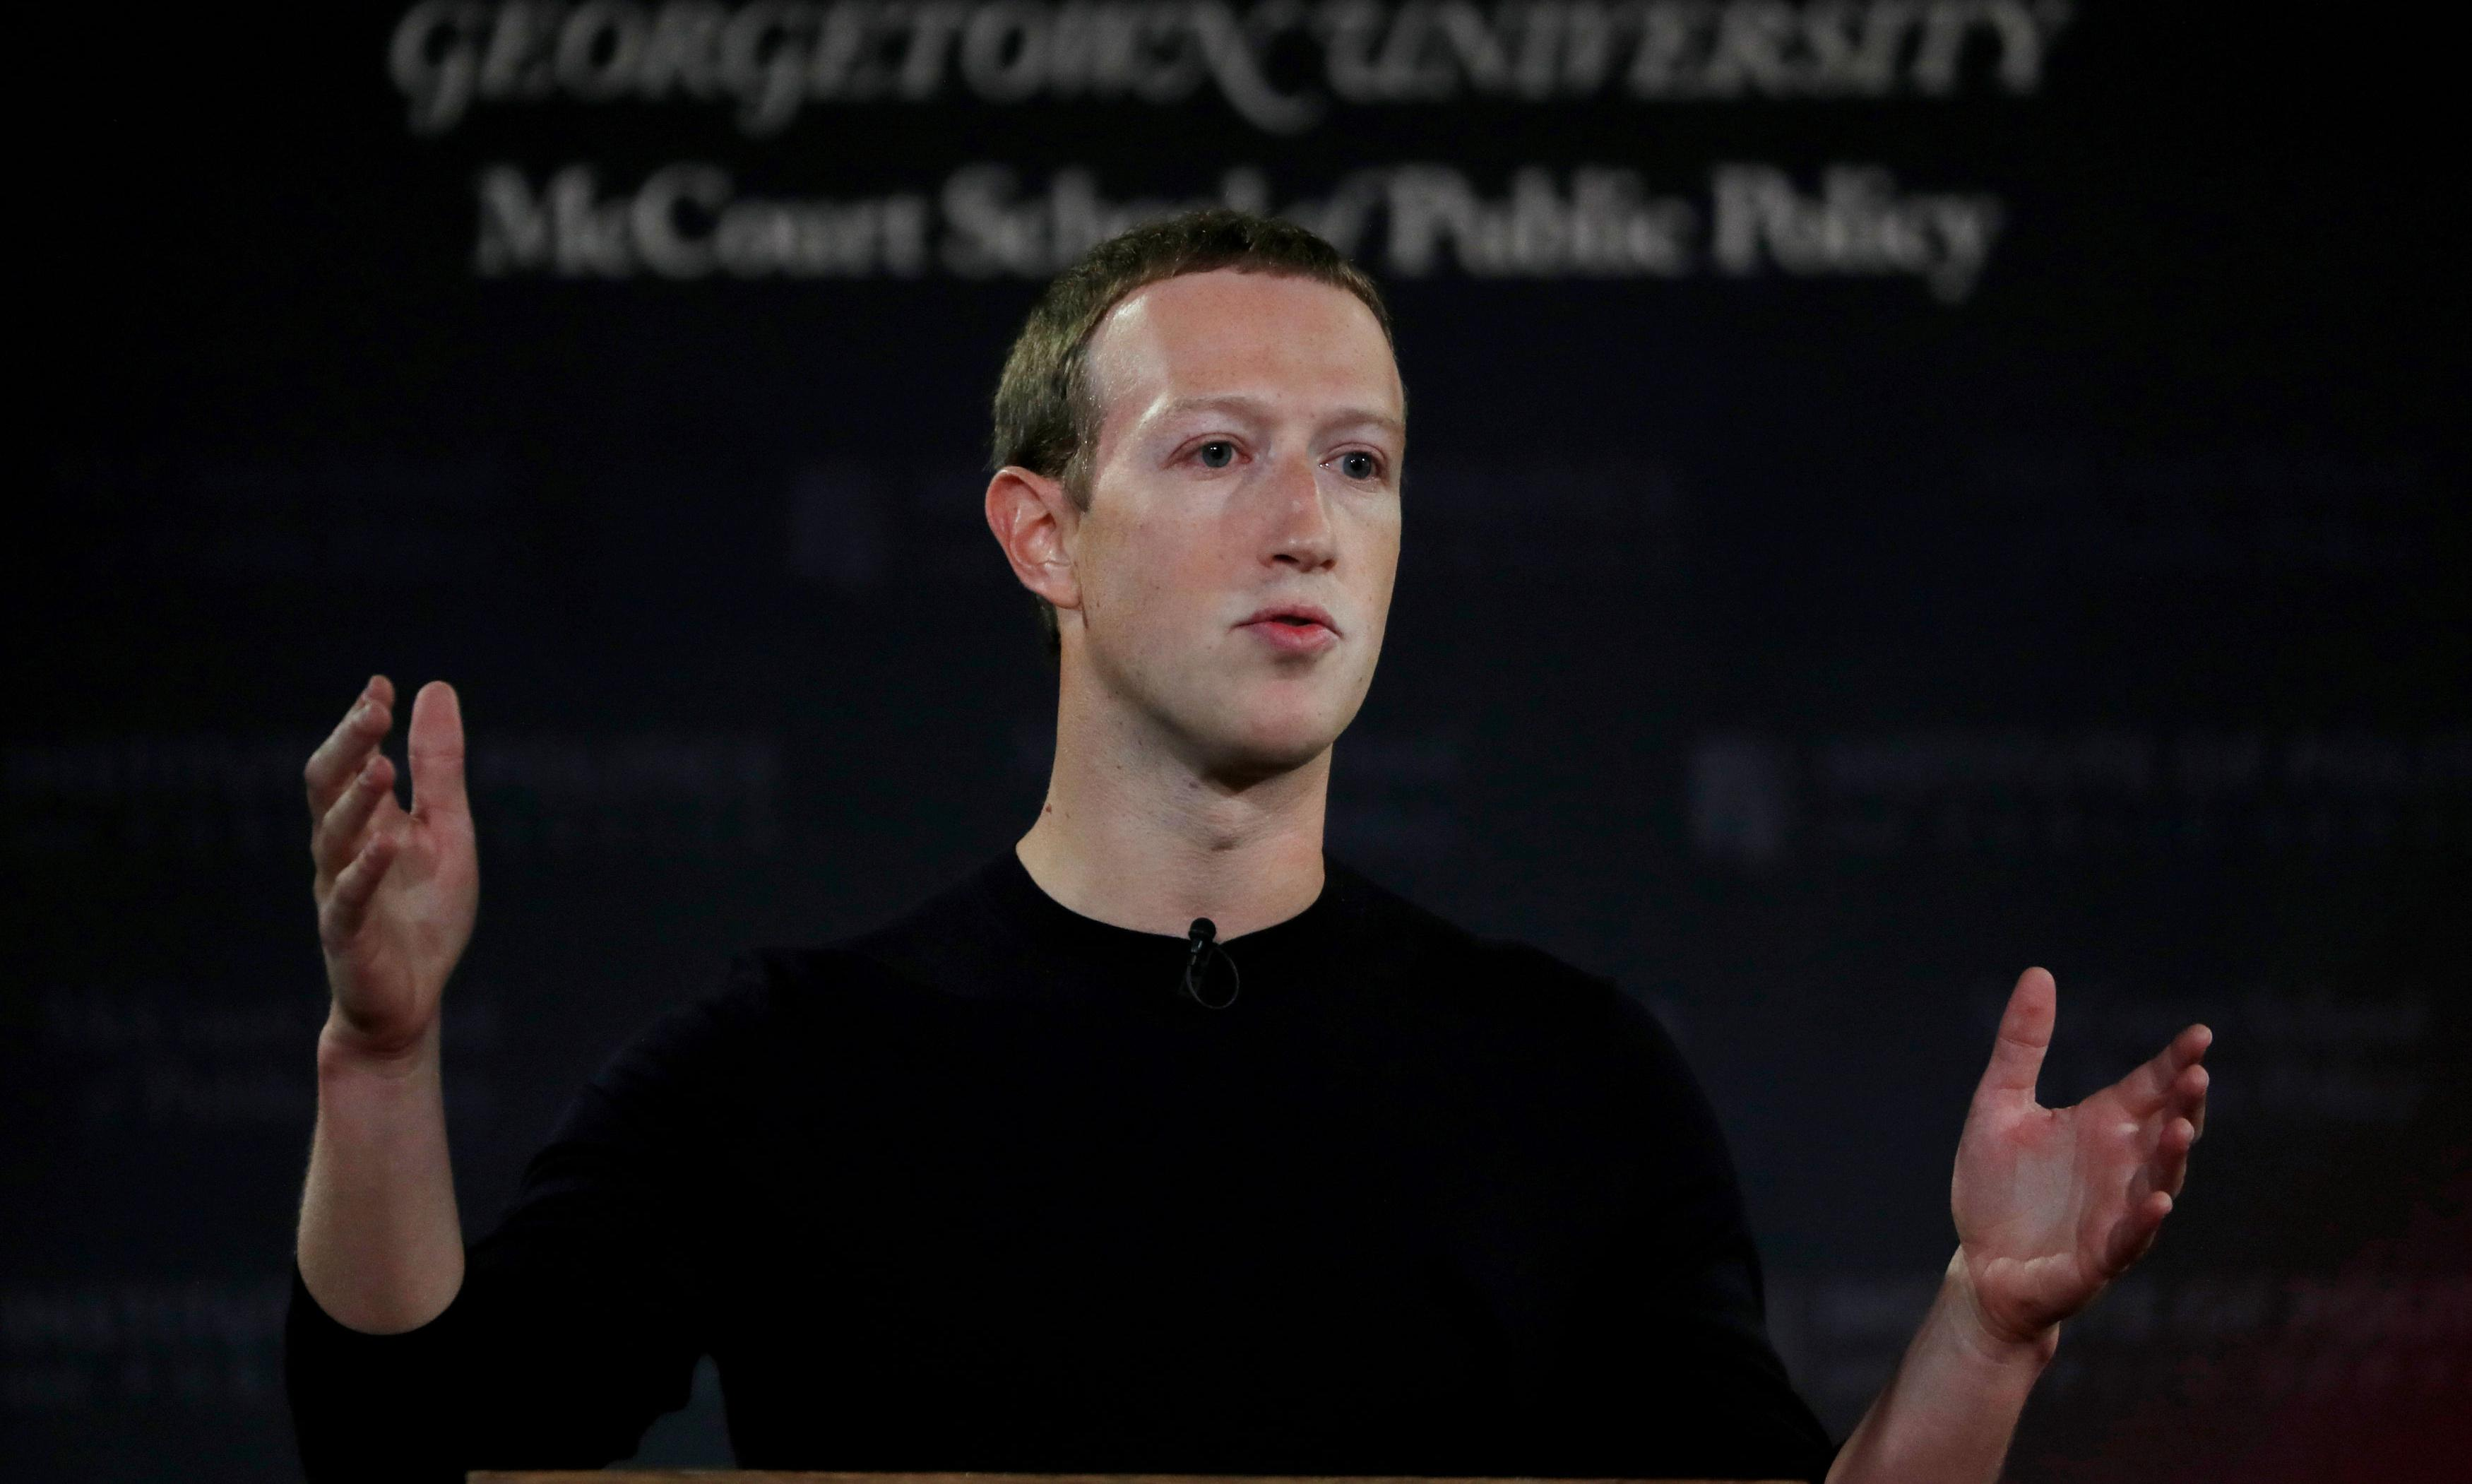 Mark Zuckerberg doesn't understand free speech in the 21st century